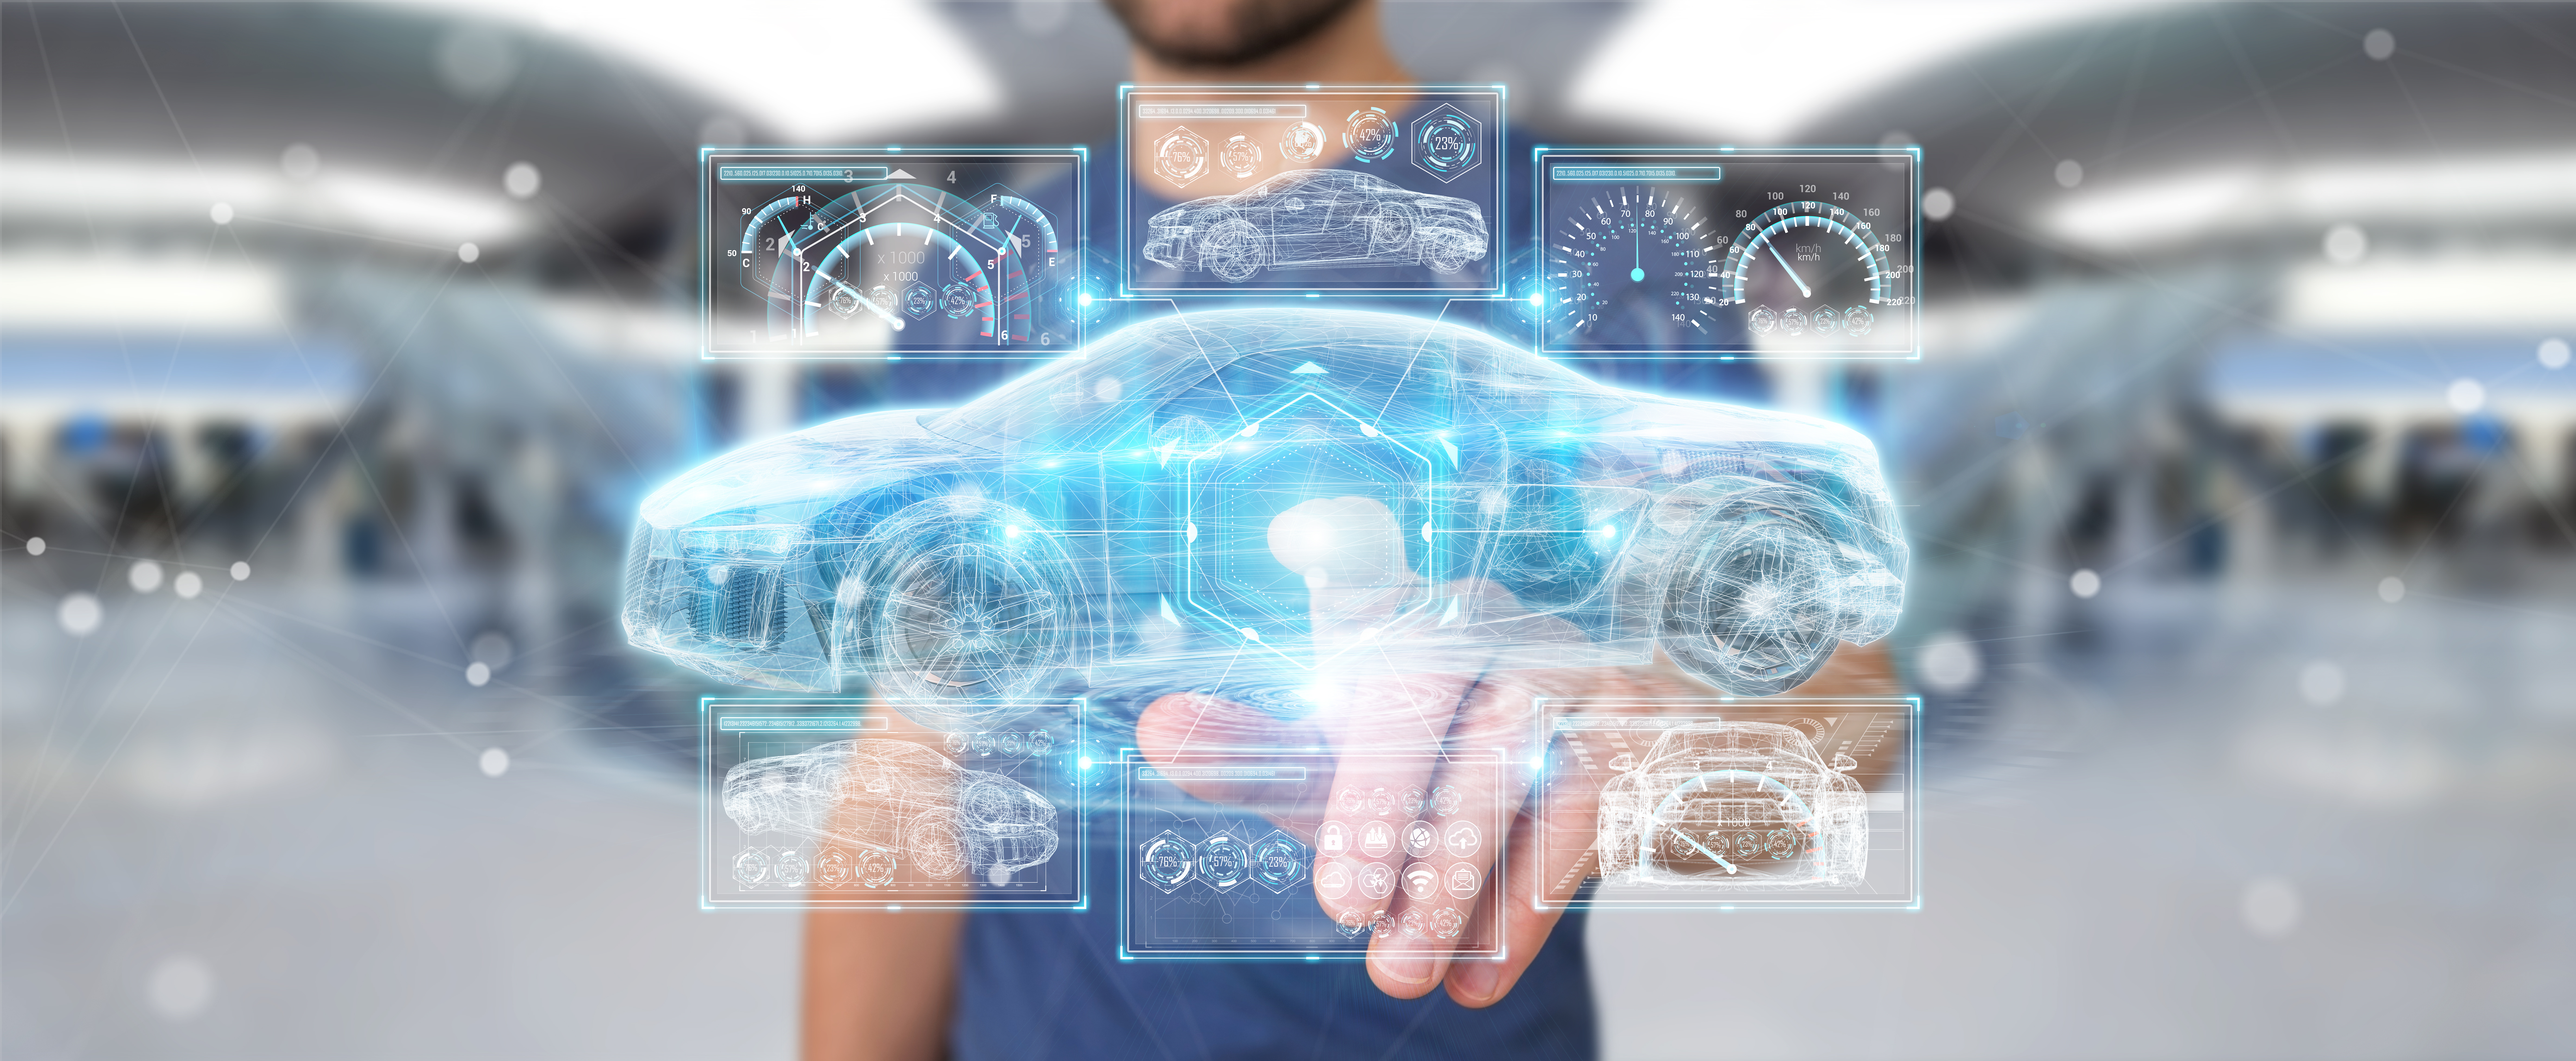 Datascience in car technology